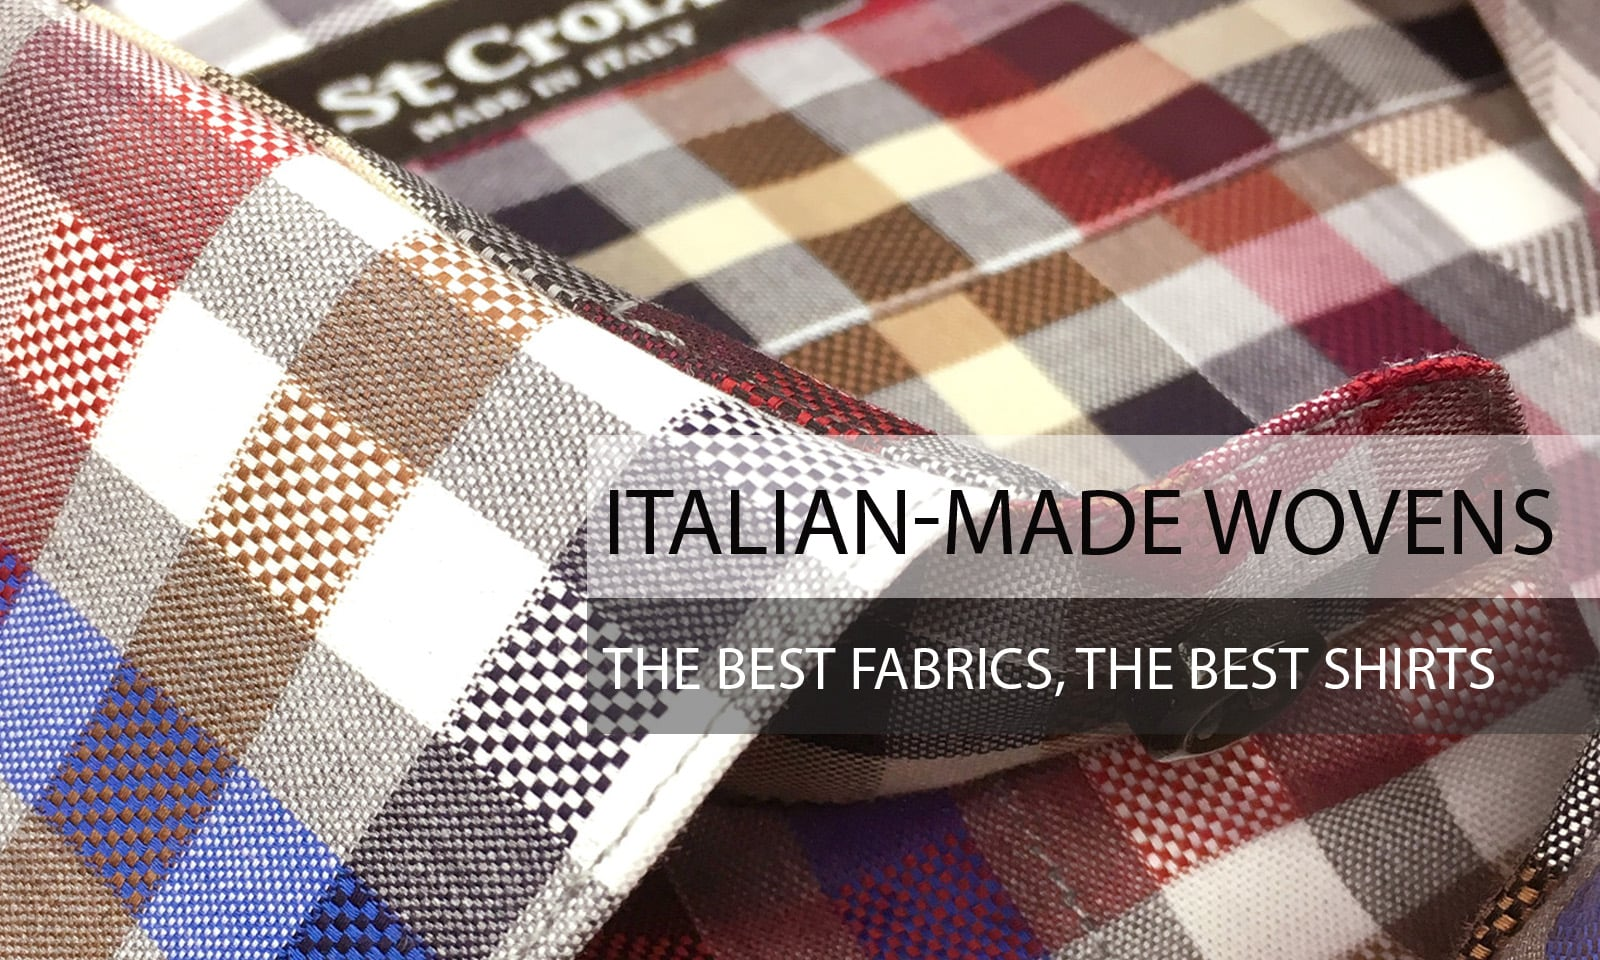 Italian-Made Wovens - The Best Fabrics - The Best Shirts